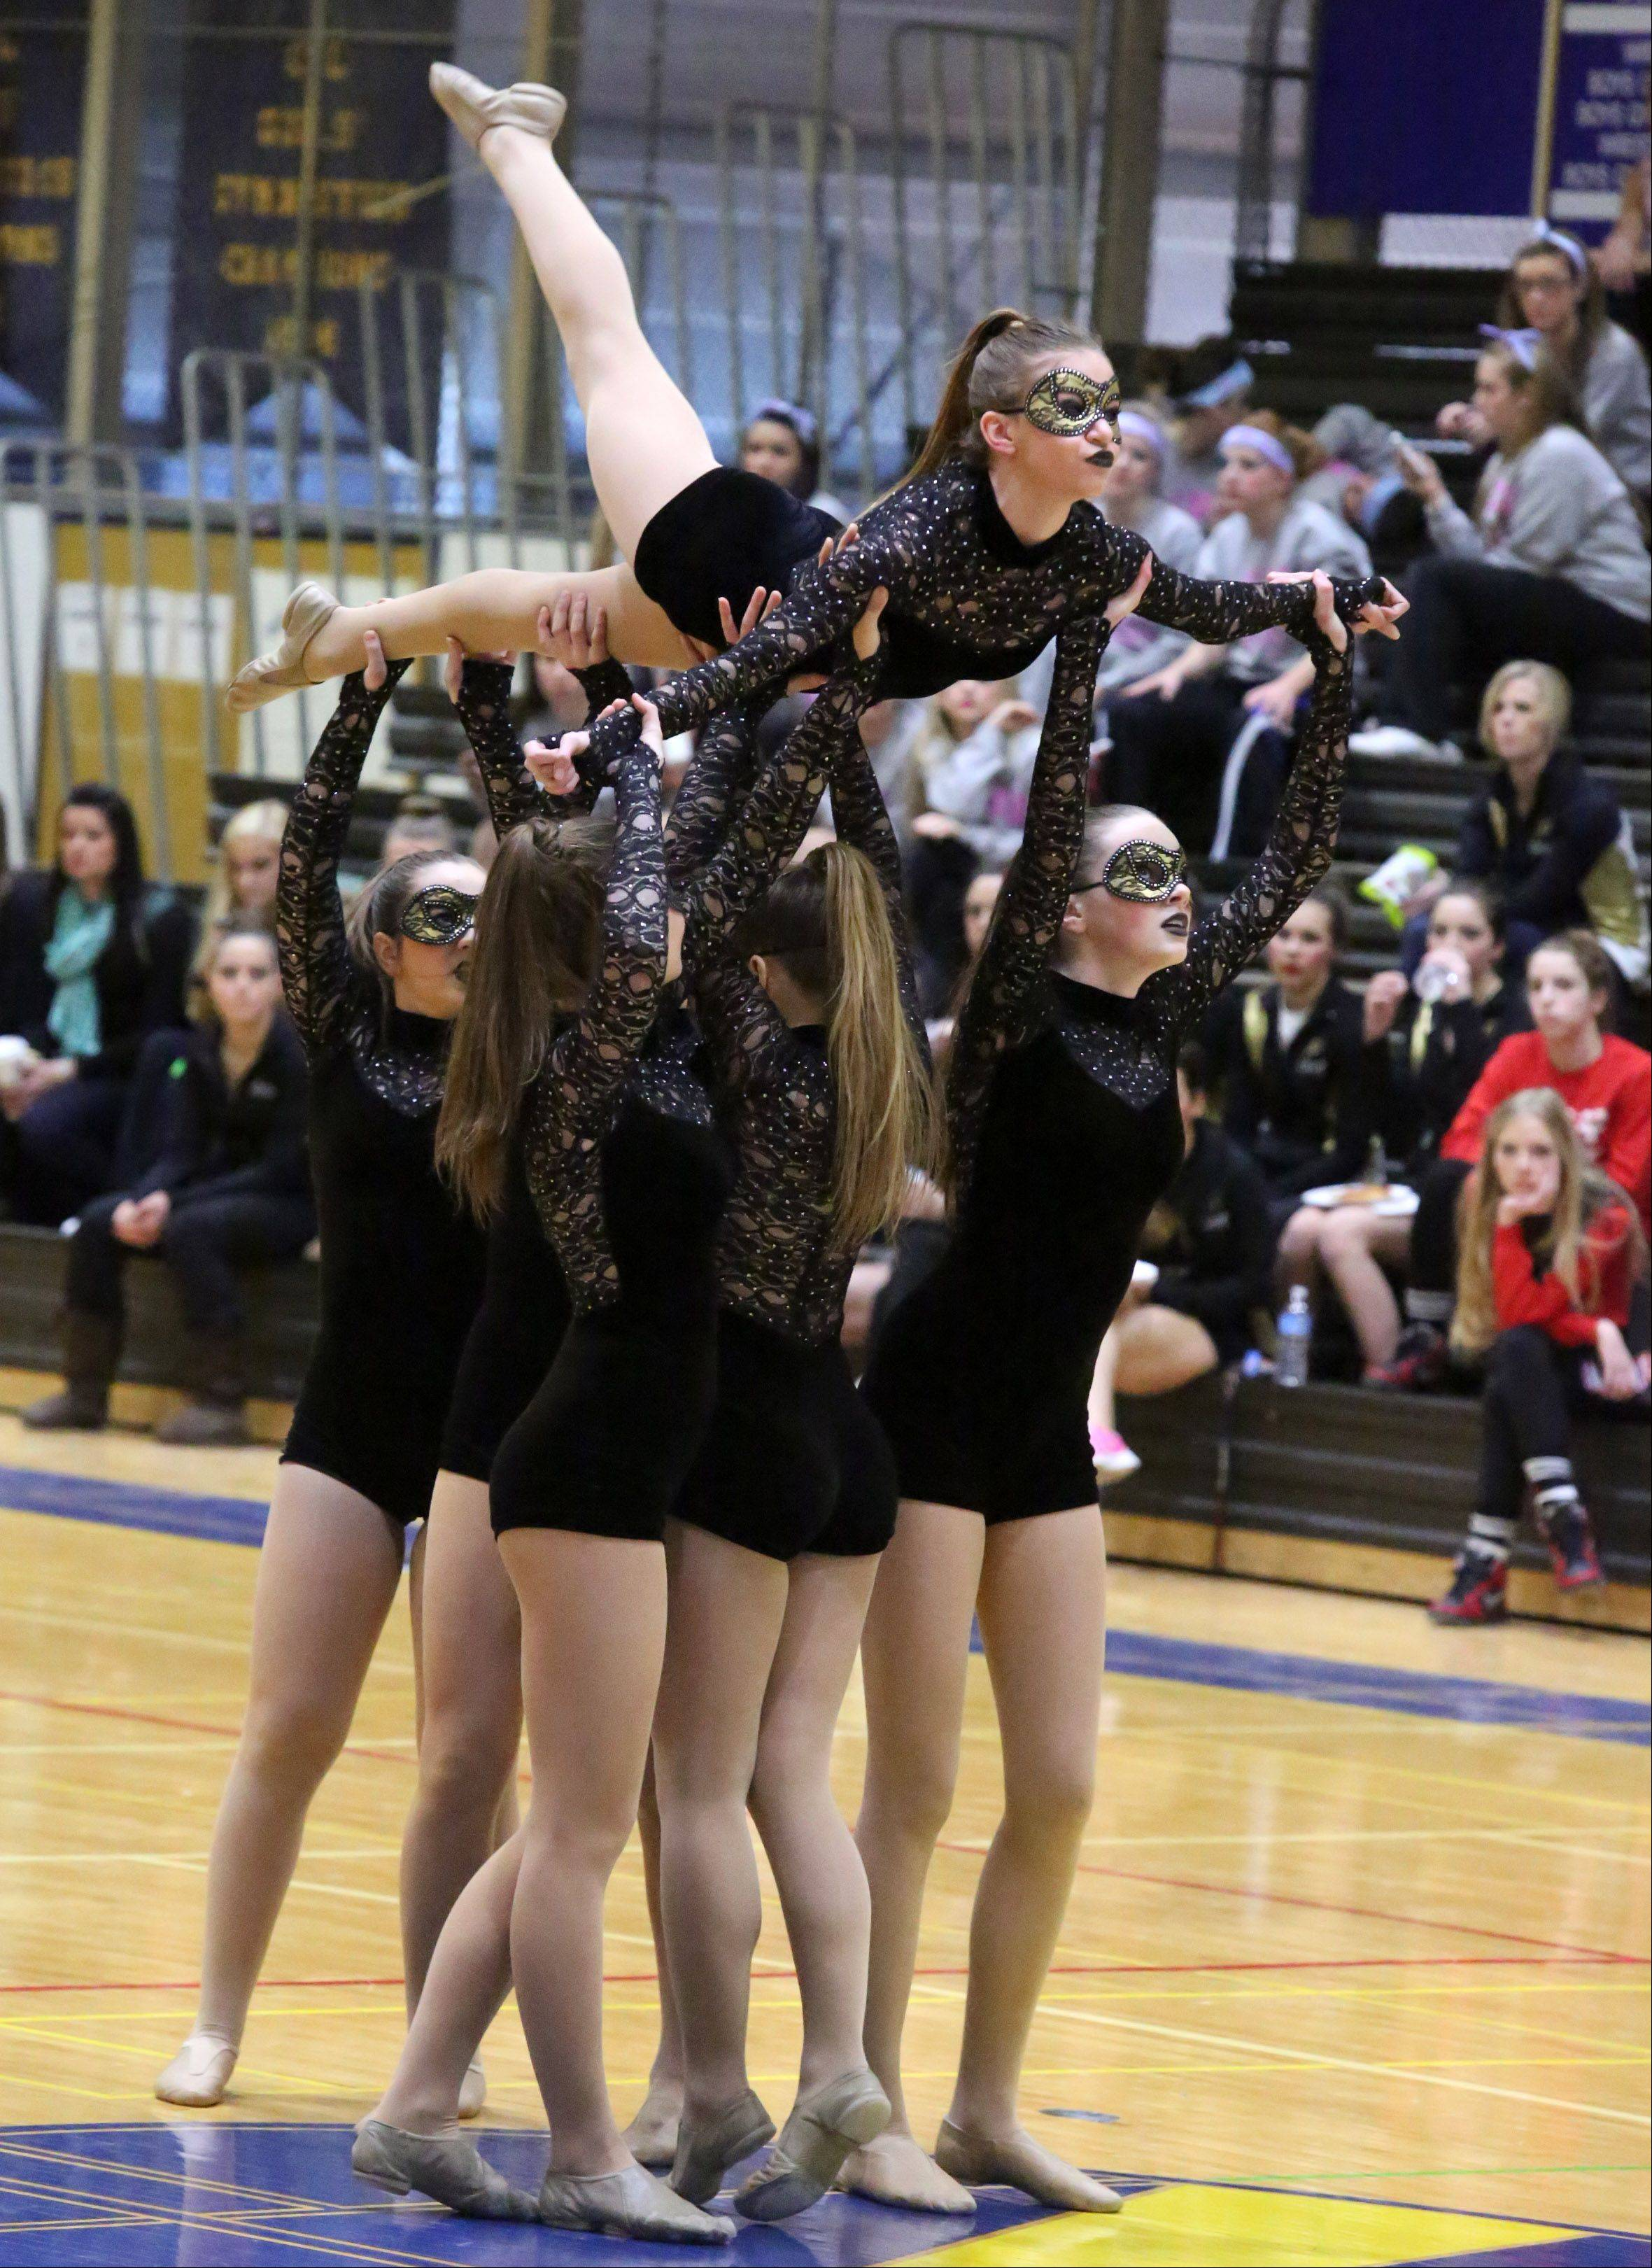 Carmel High School's dance team competes at the IHSA competitive dance sectional at Glenbrook South High School on Saturday in Glenview.